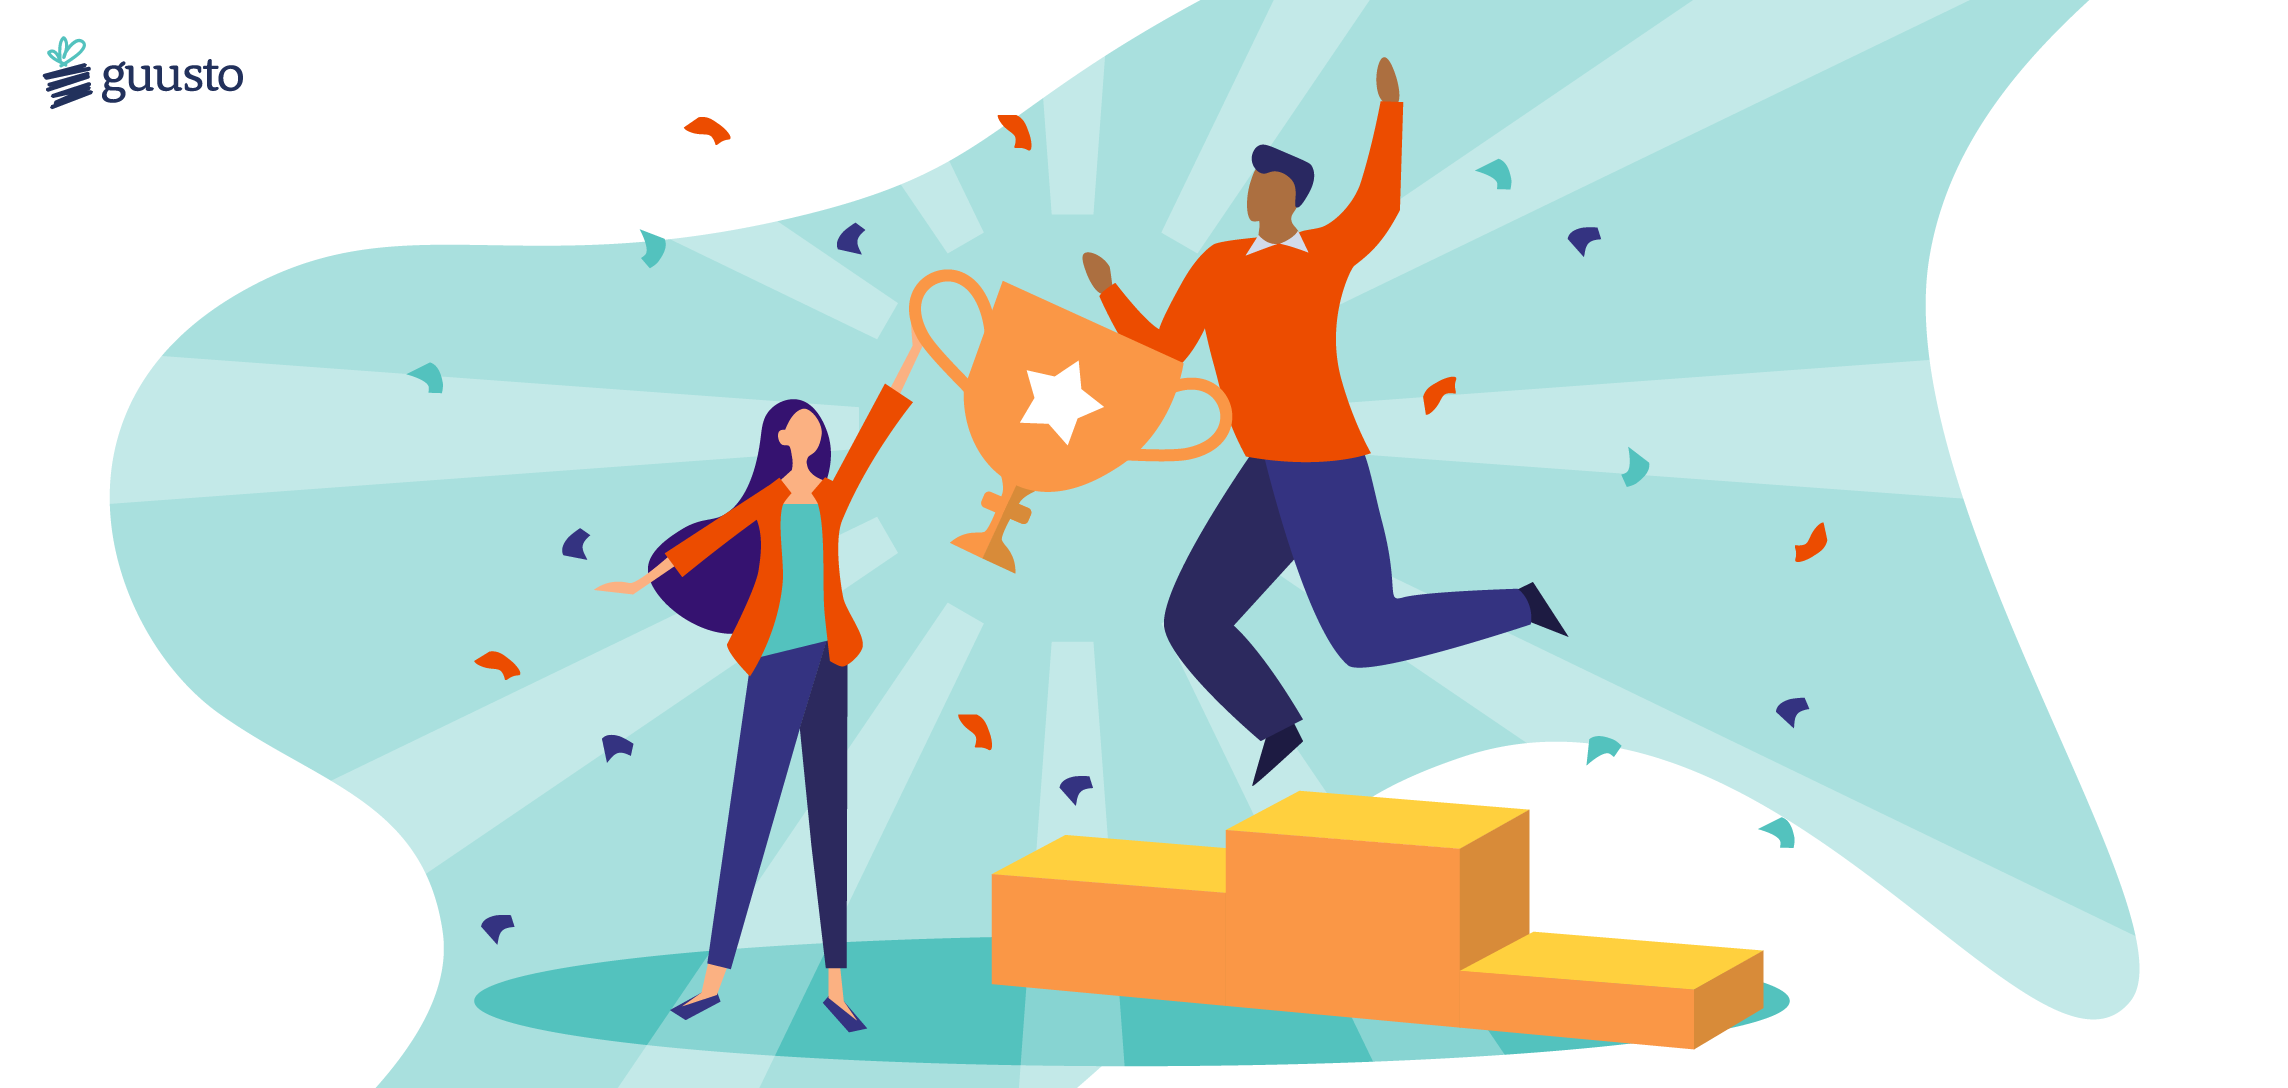 5 Key Steps to Increase Manager Adoption of Your Recognition Program